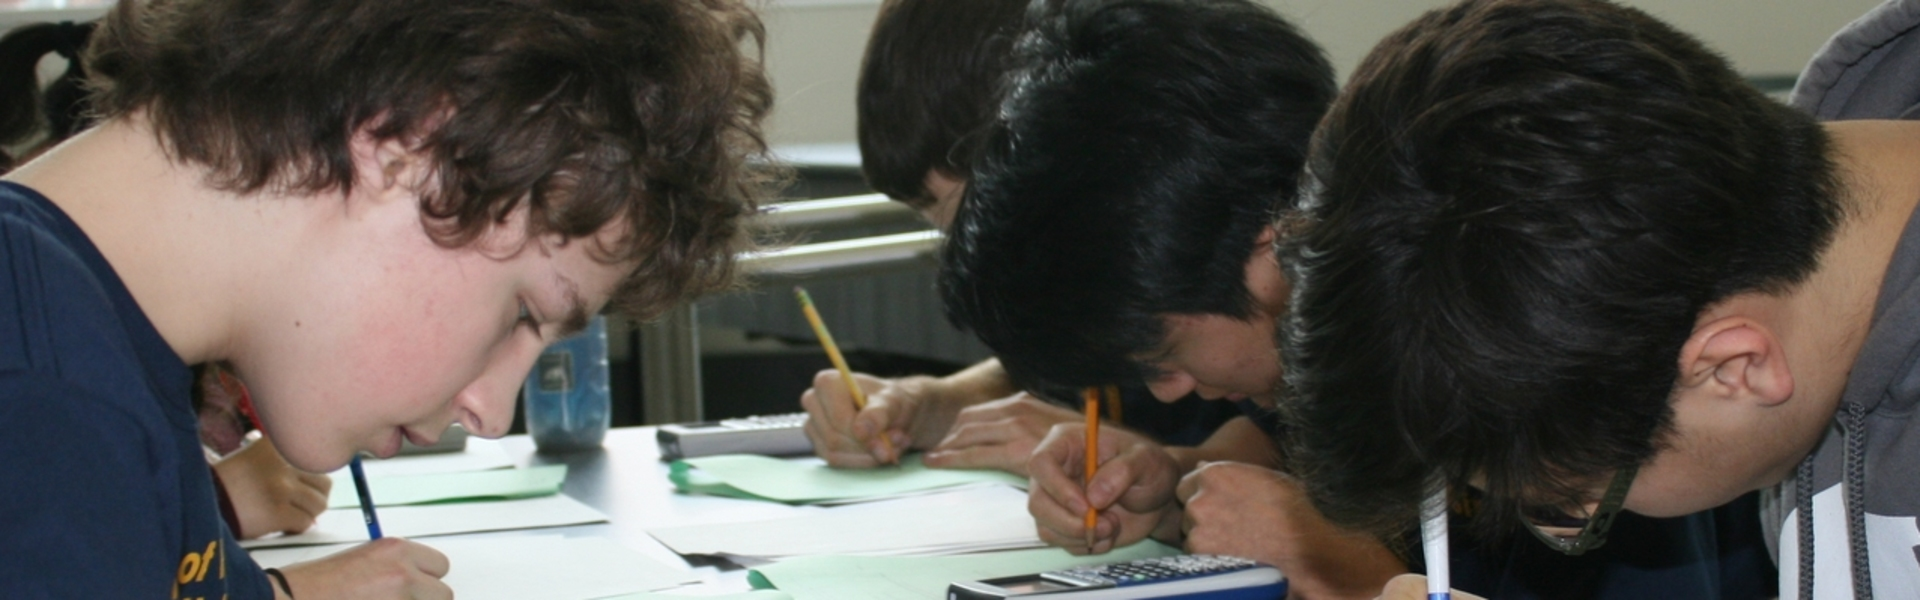 Students working hard on a test